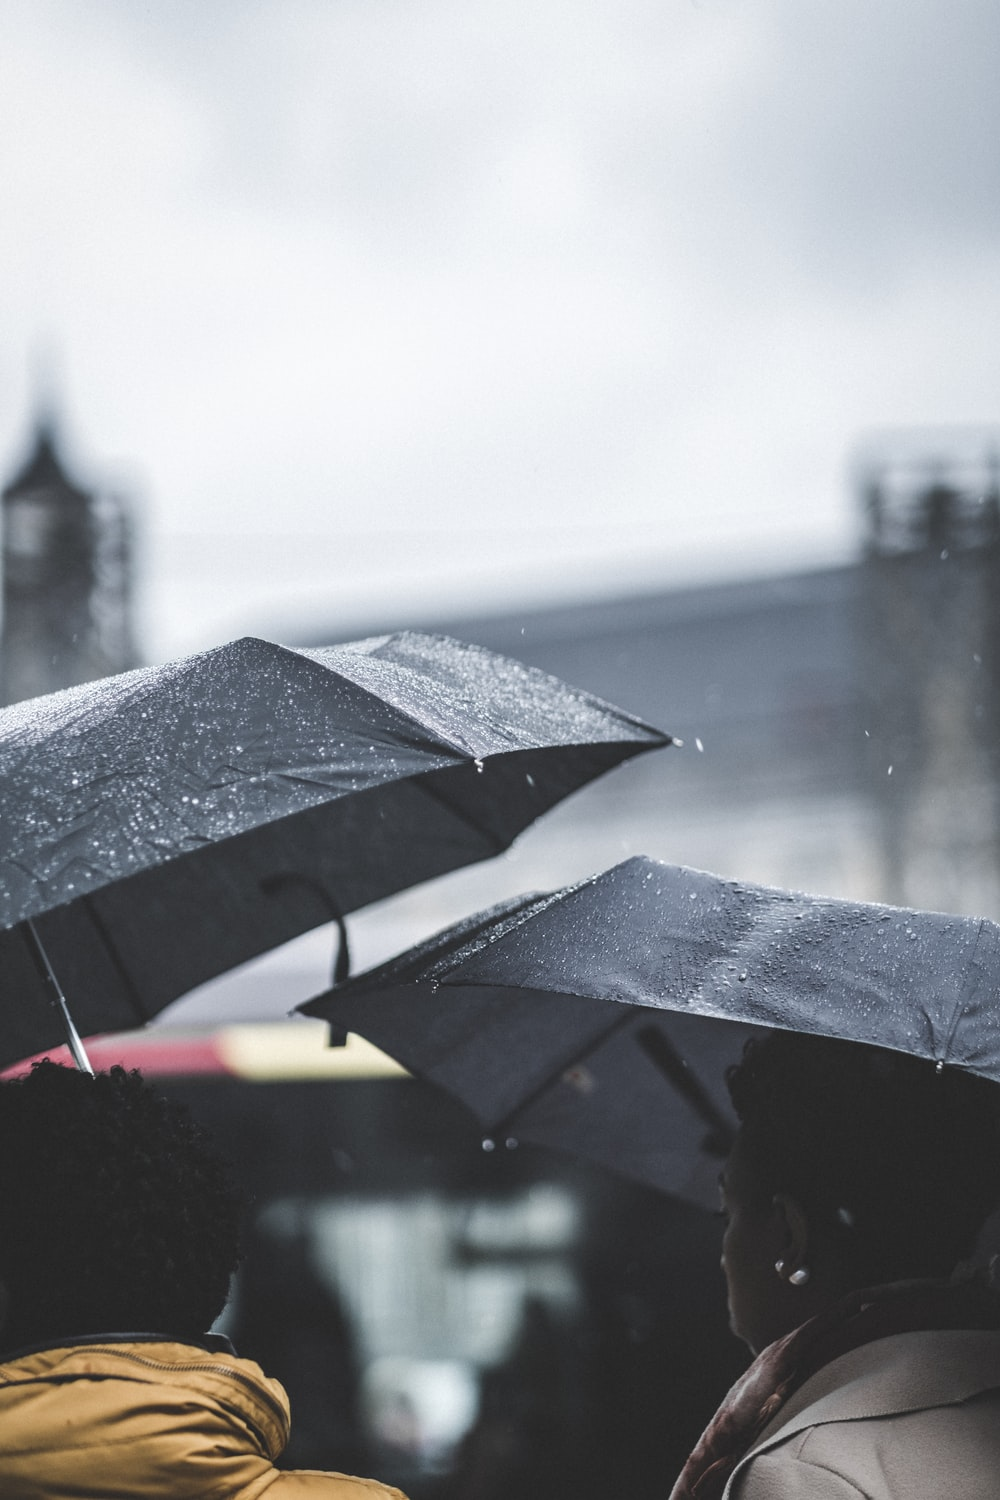 shallow focus photography of black umbrellas